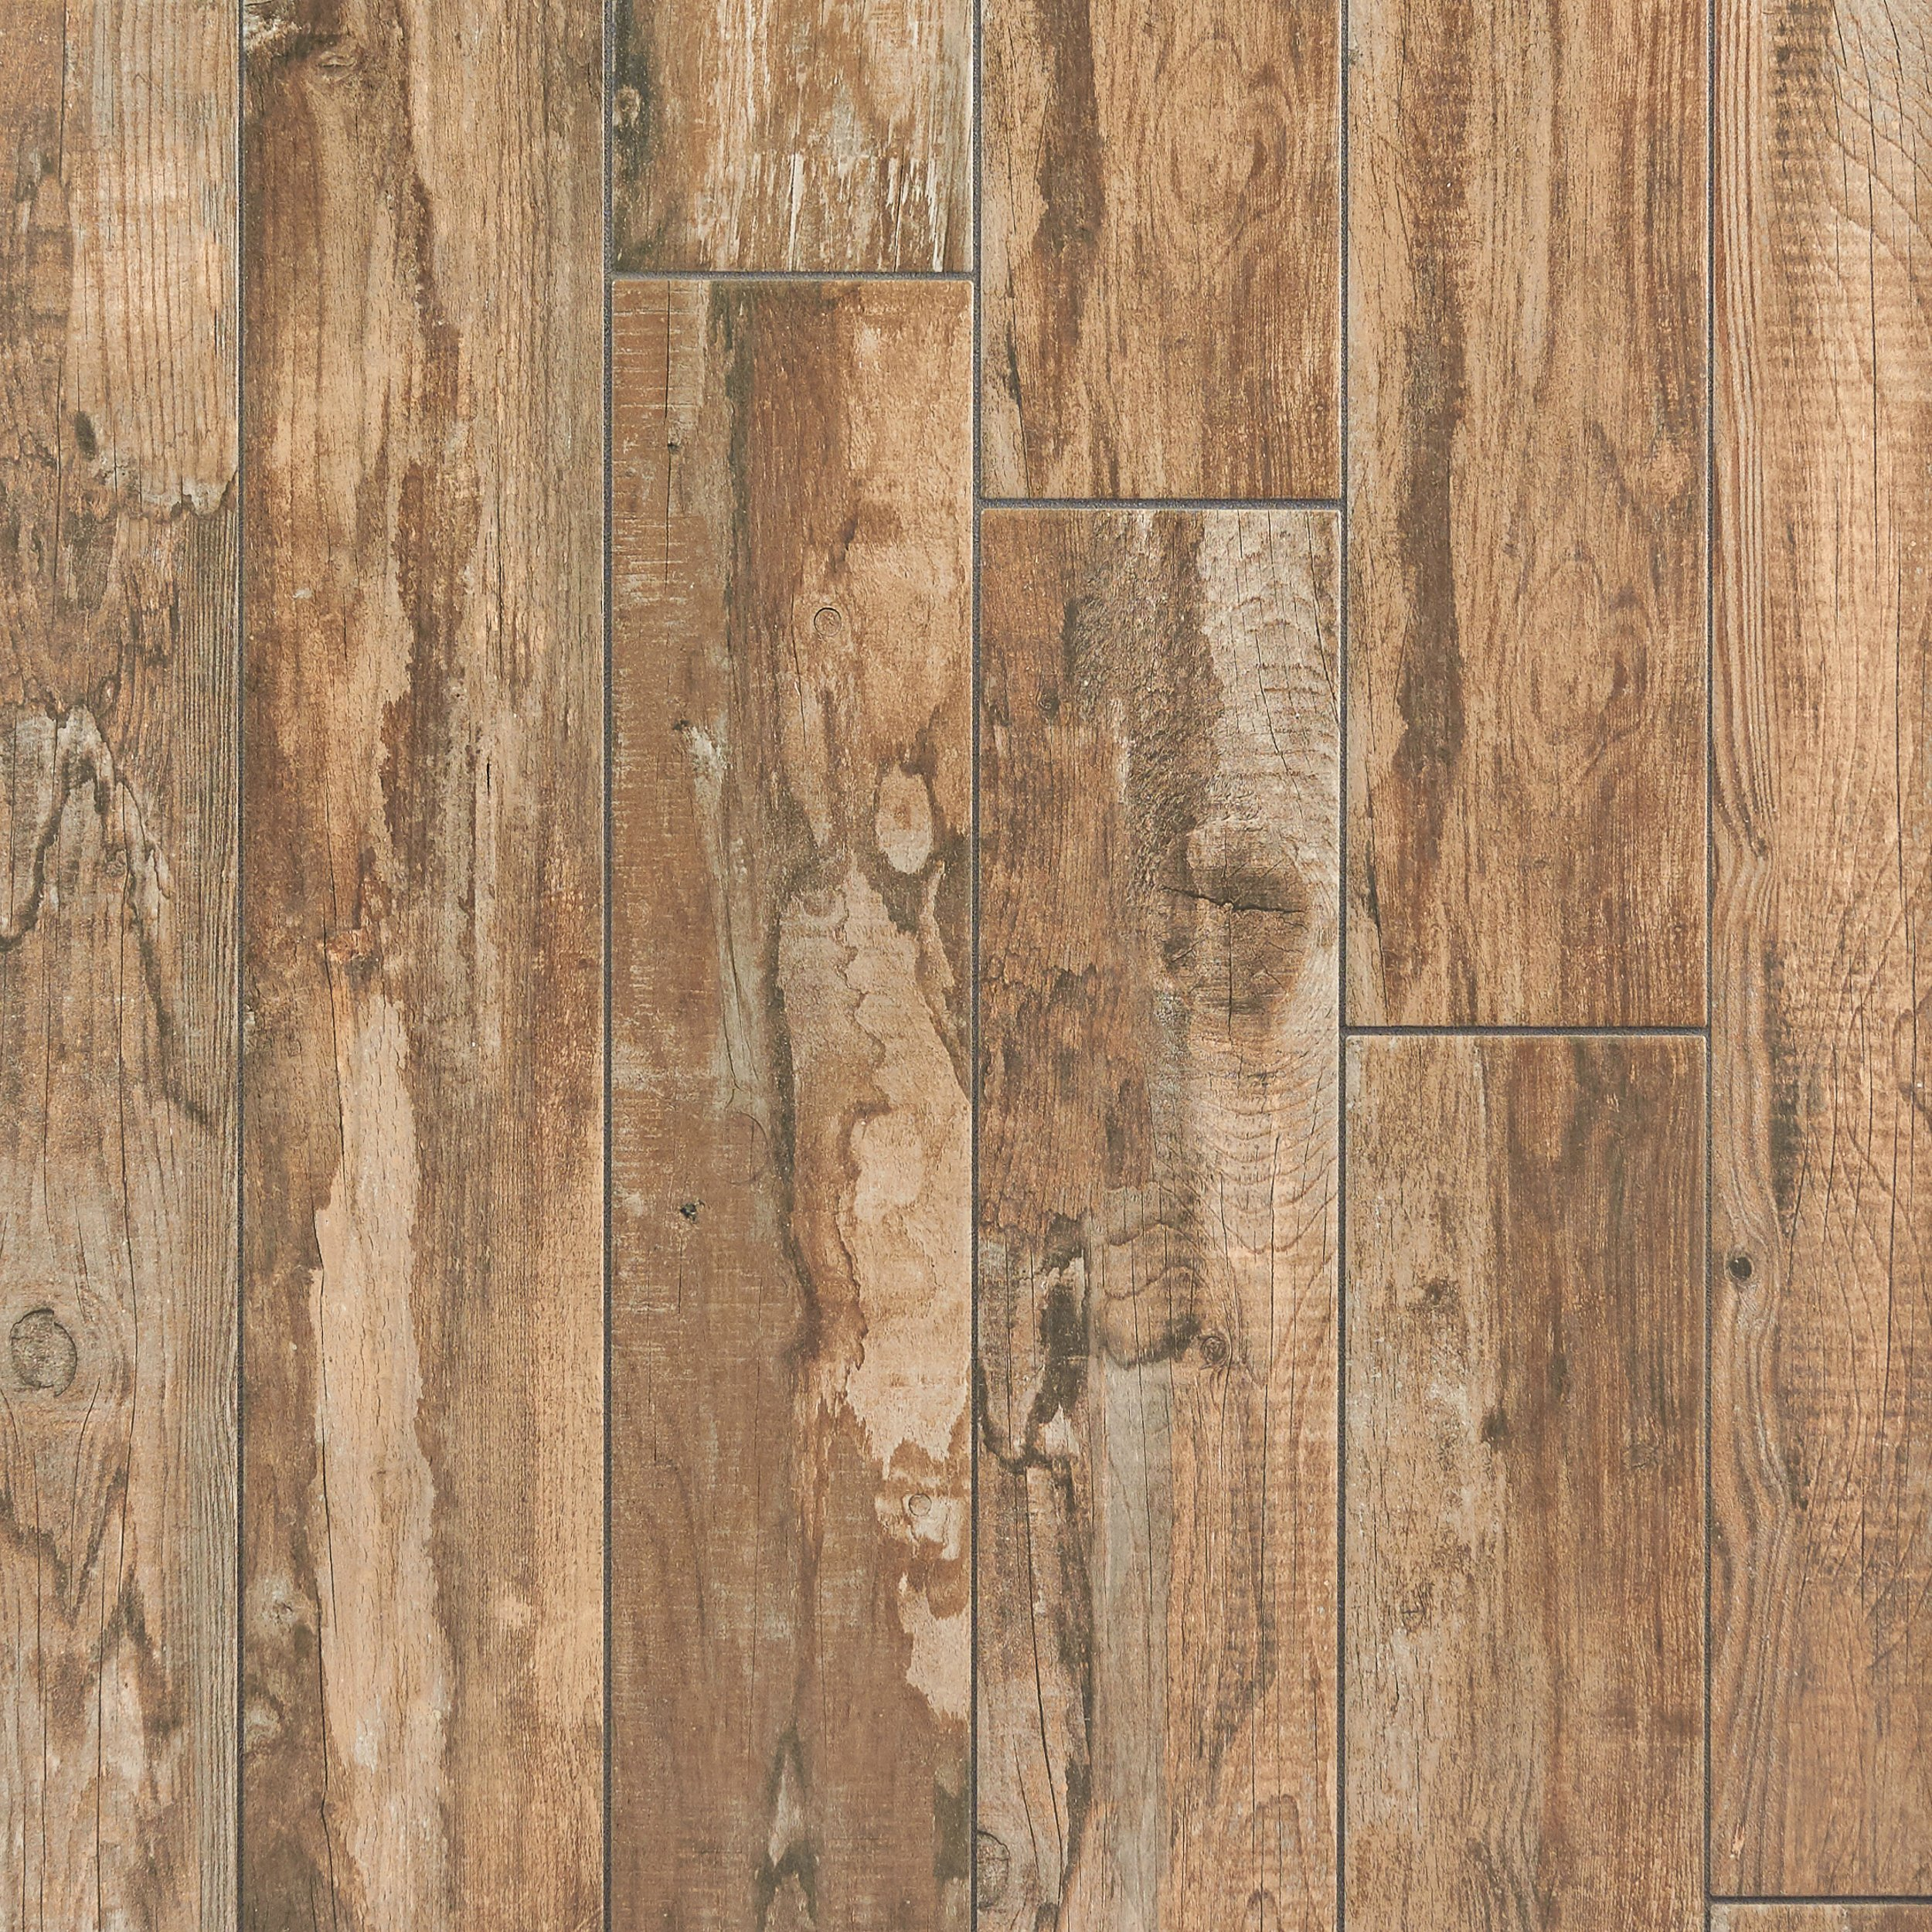 Porcelain Tile Wood Plank: Tahoe Ocre Wood Plank Porcelain Tile